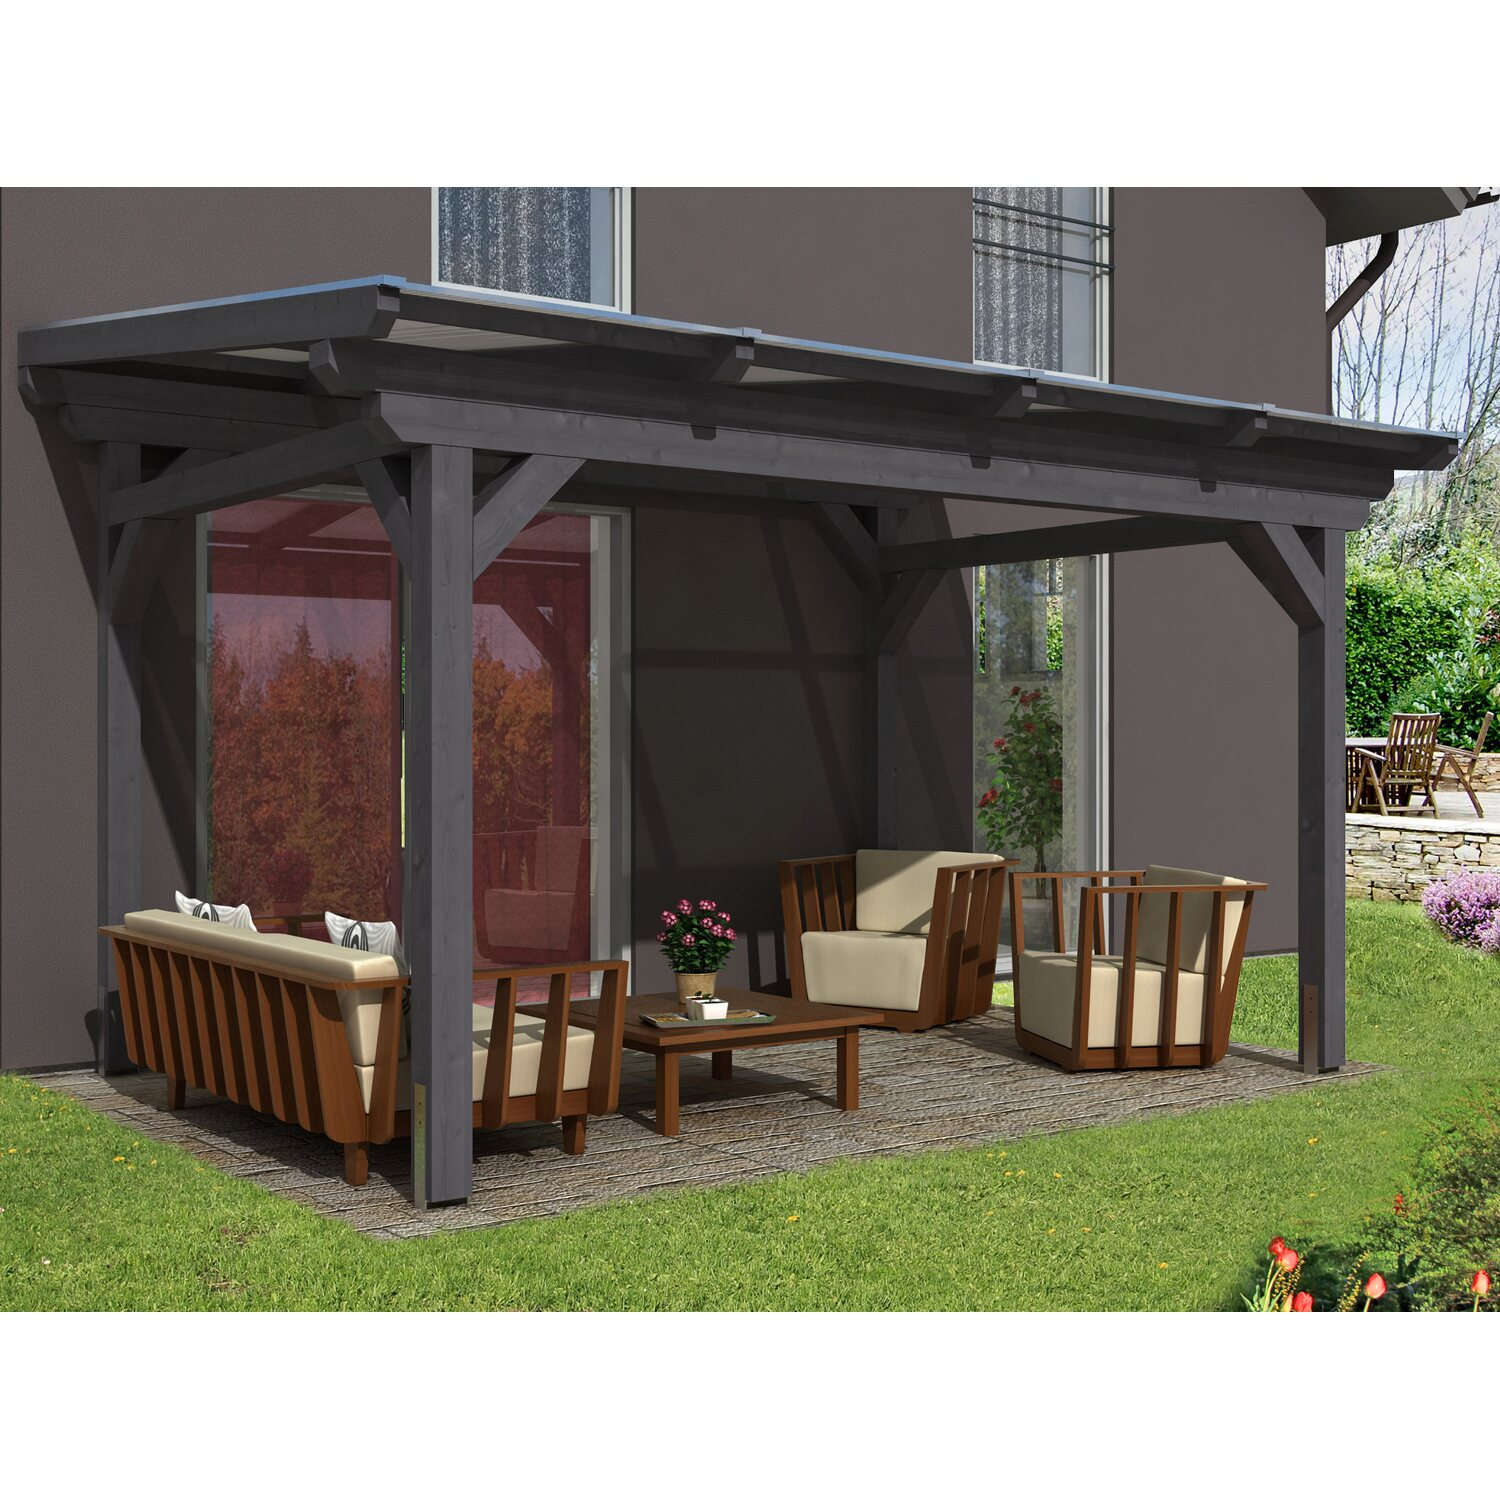 pergola bausatz freistehend simple von discount freistehend bausatz with pergola bausatz. Black Bedroom Furniture Sets. Home Design Ideas